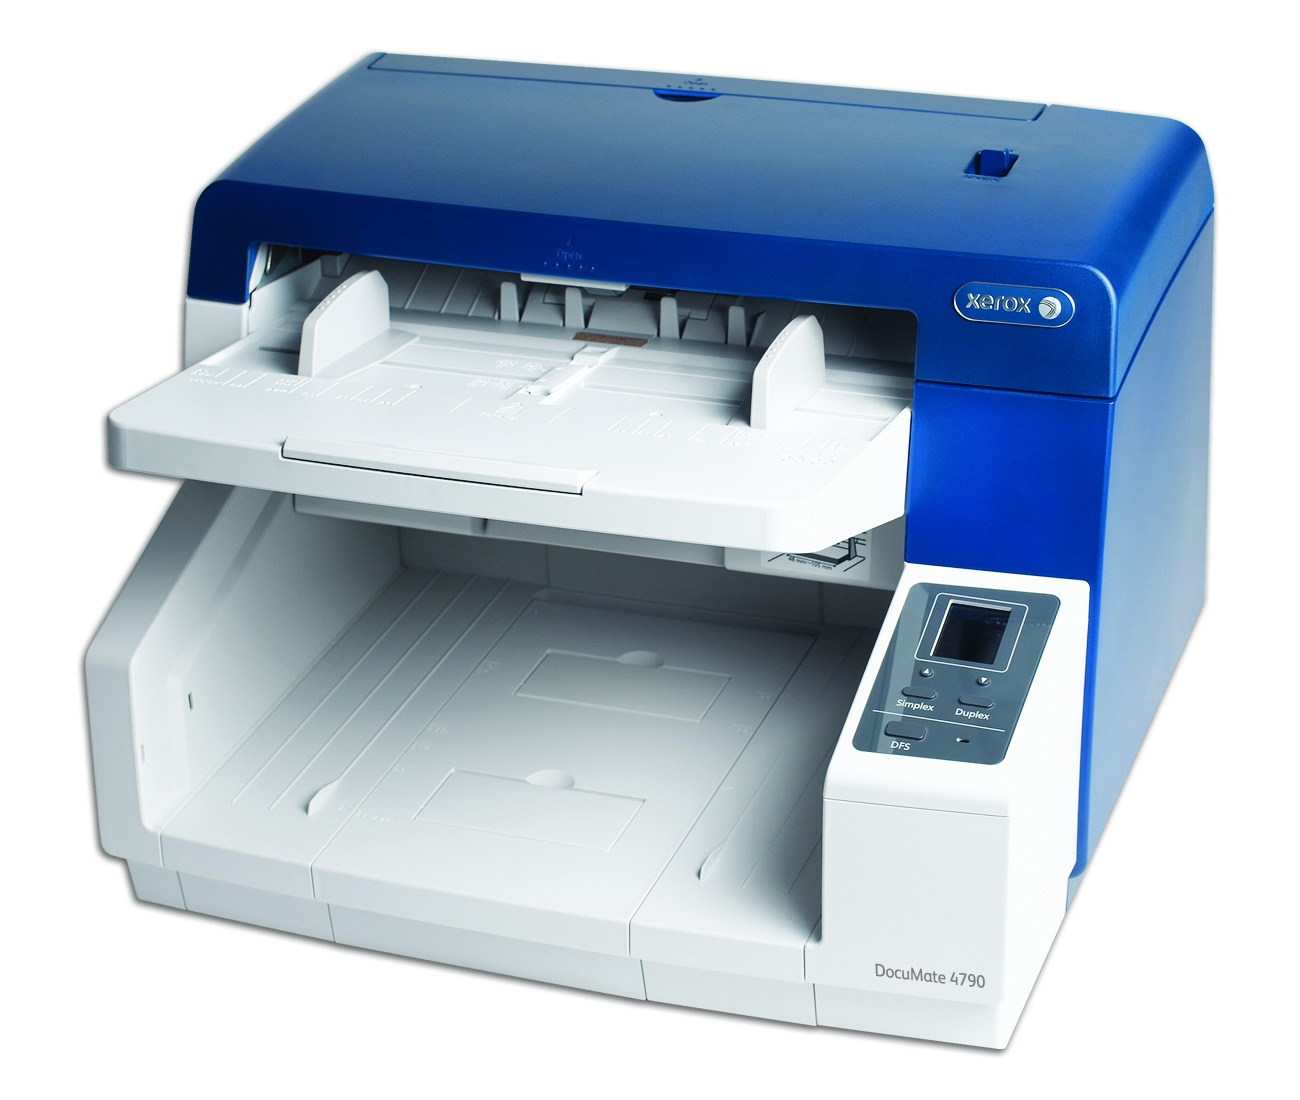 Xerox DocuMate 4790 Sheetfed A3 Scanner, Duplex A3, 90Ppm/180Ipm, 200 Sheet Adf, Usb 2.0, 600Dpi, Visioneer One Touch Scanning, Twain & Isis Driver, 24Bit Colour, Kofax Vrs Standard Software Included, 220V. Duty Cycle 10,000 Pages Per Day. Windows Only.